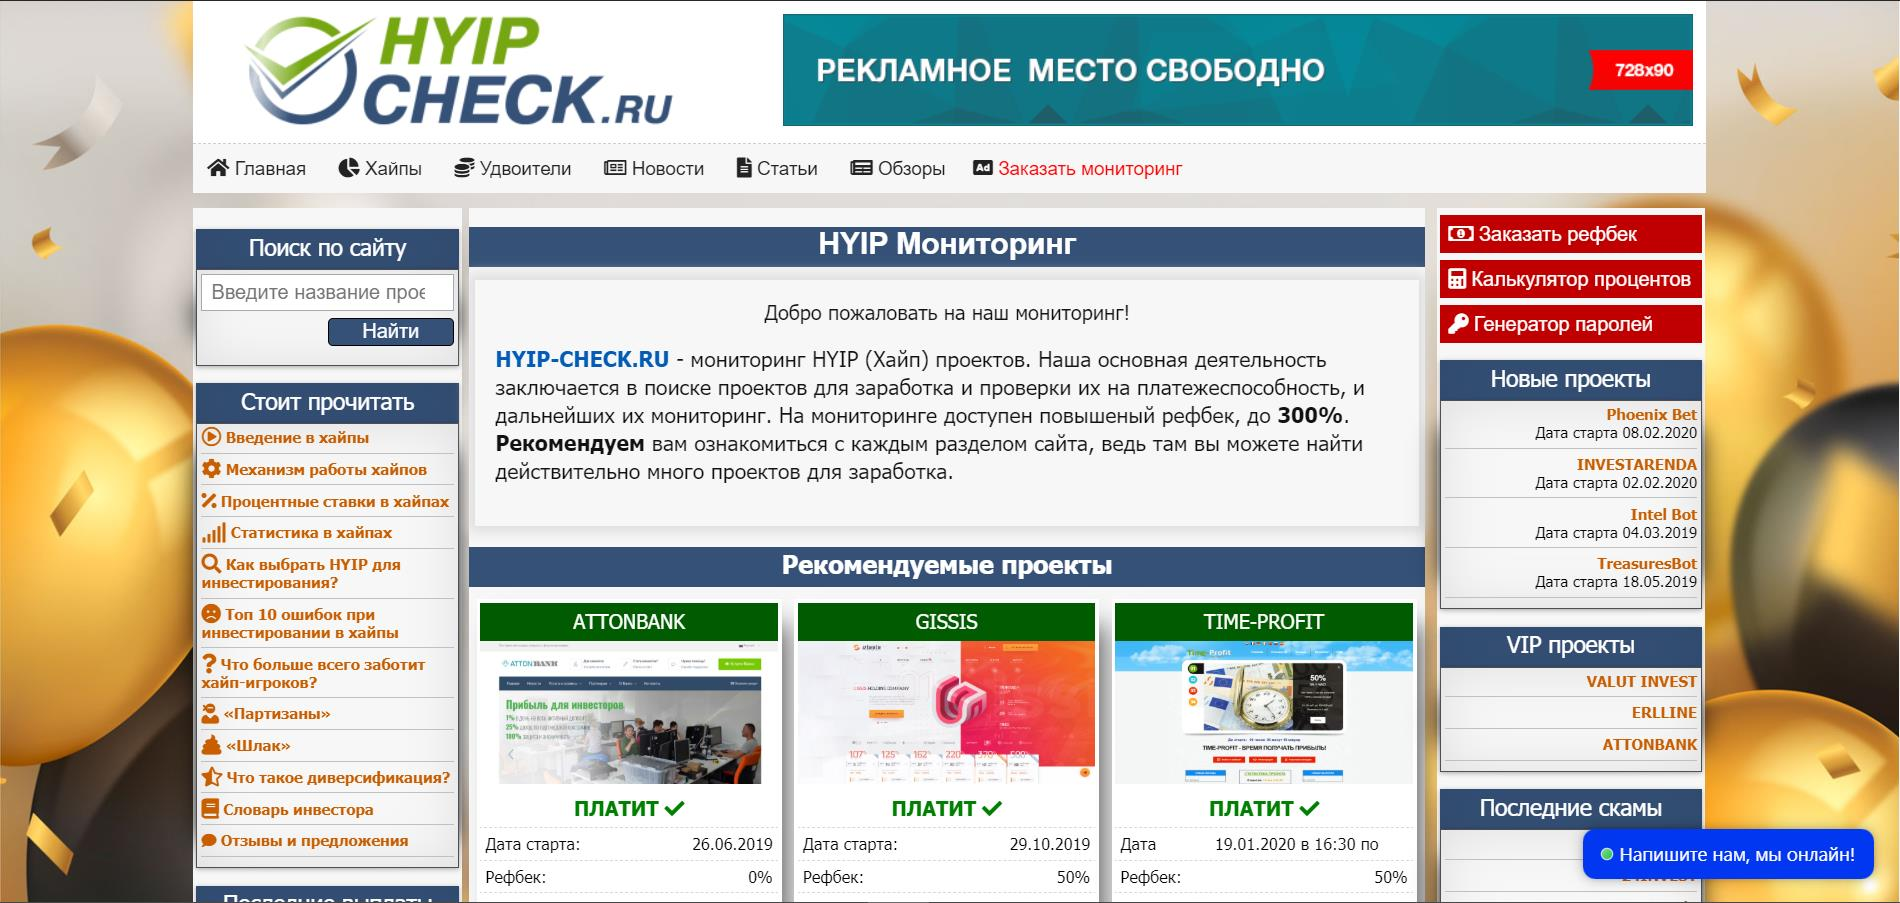 HYIP-CHECK.RU - Мониторинг HYIP Проектов. РЕФБЕК 50% ScreenShot_20200217155242